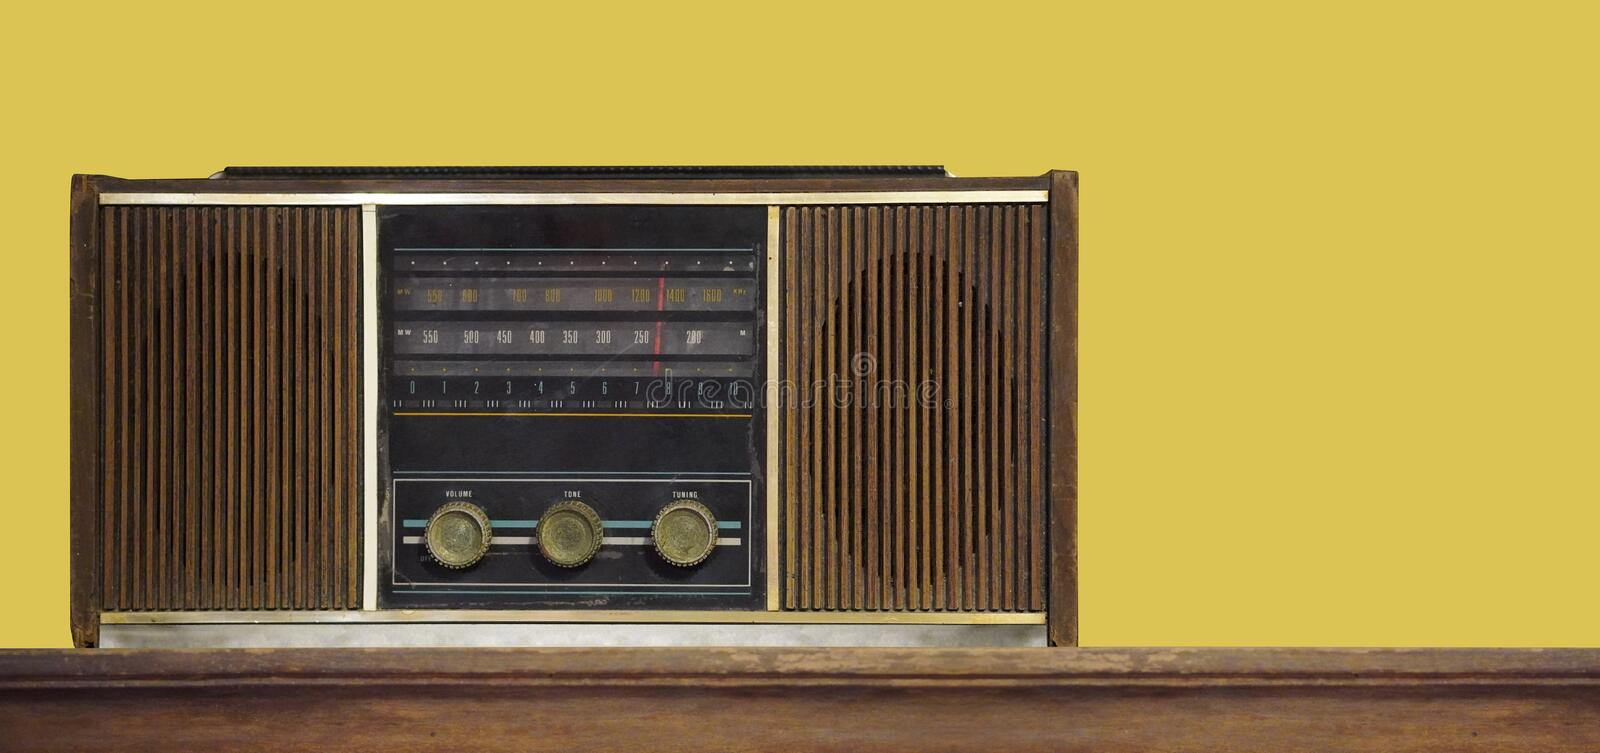 Front view antique brown radio on wooden background,wall yellow background,technology background,copy space stock photography